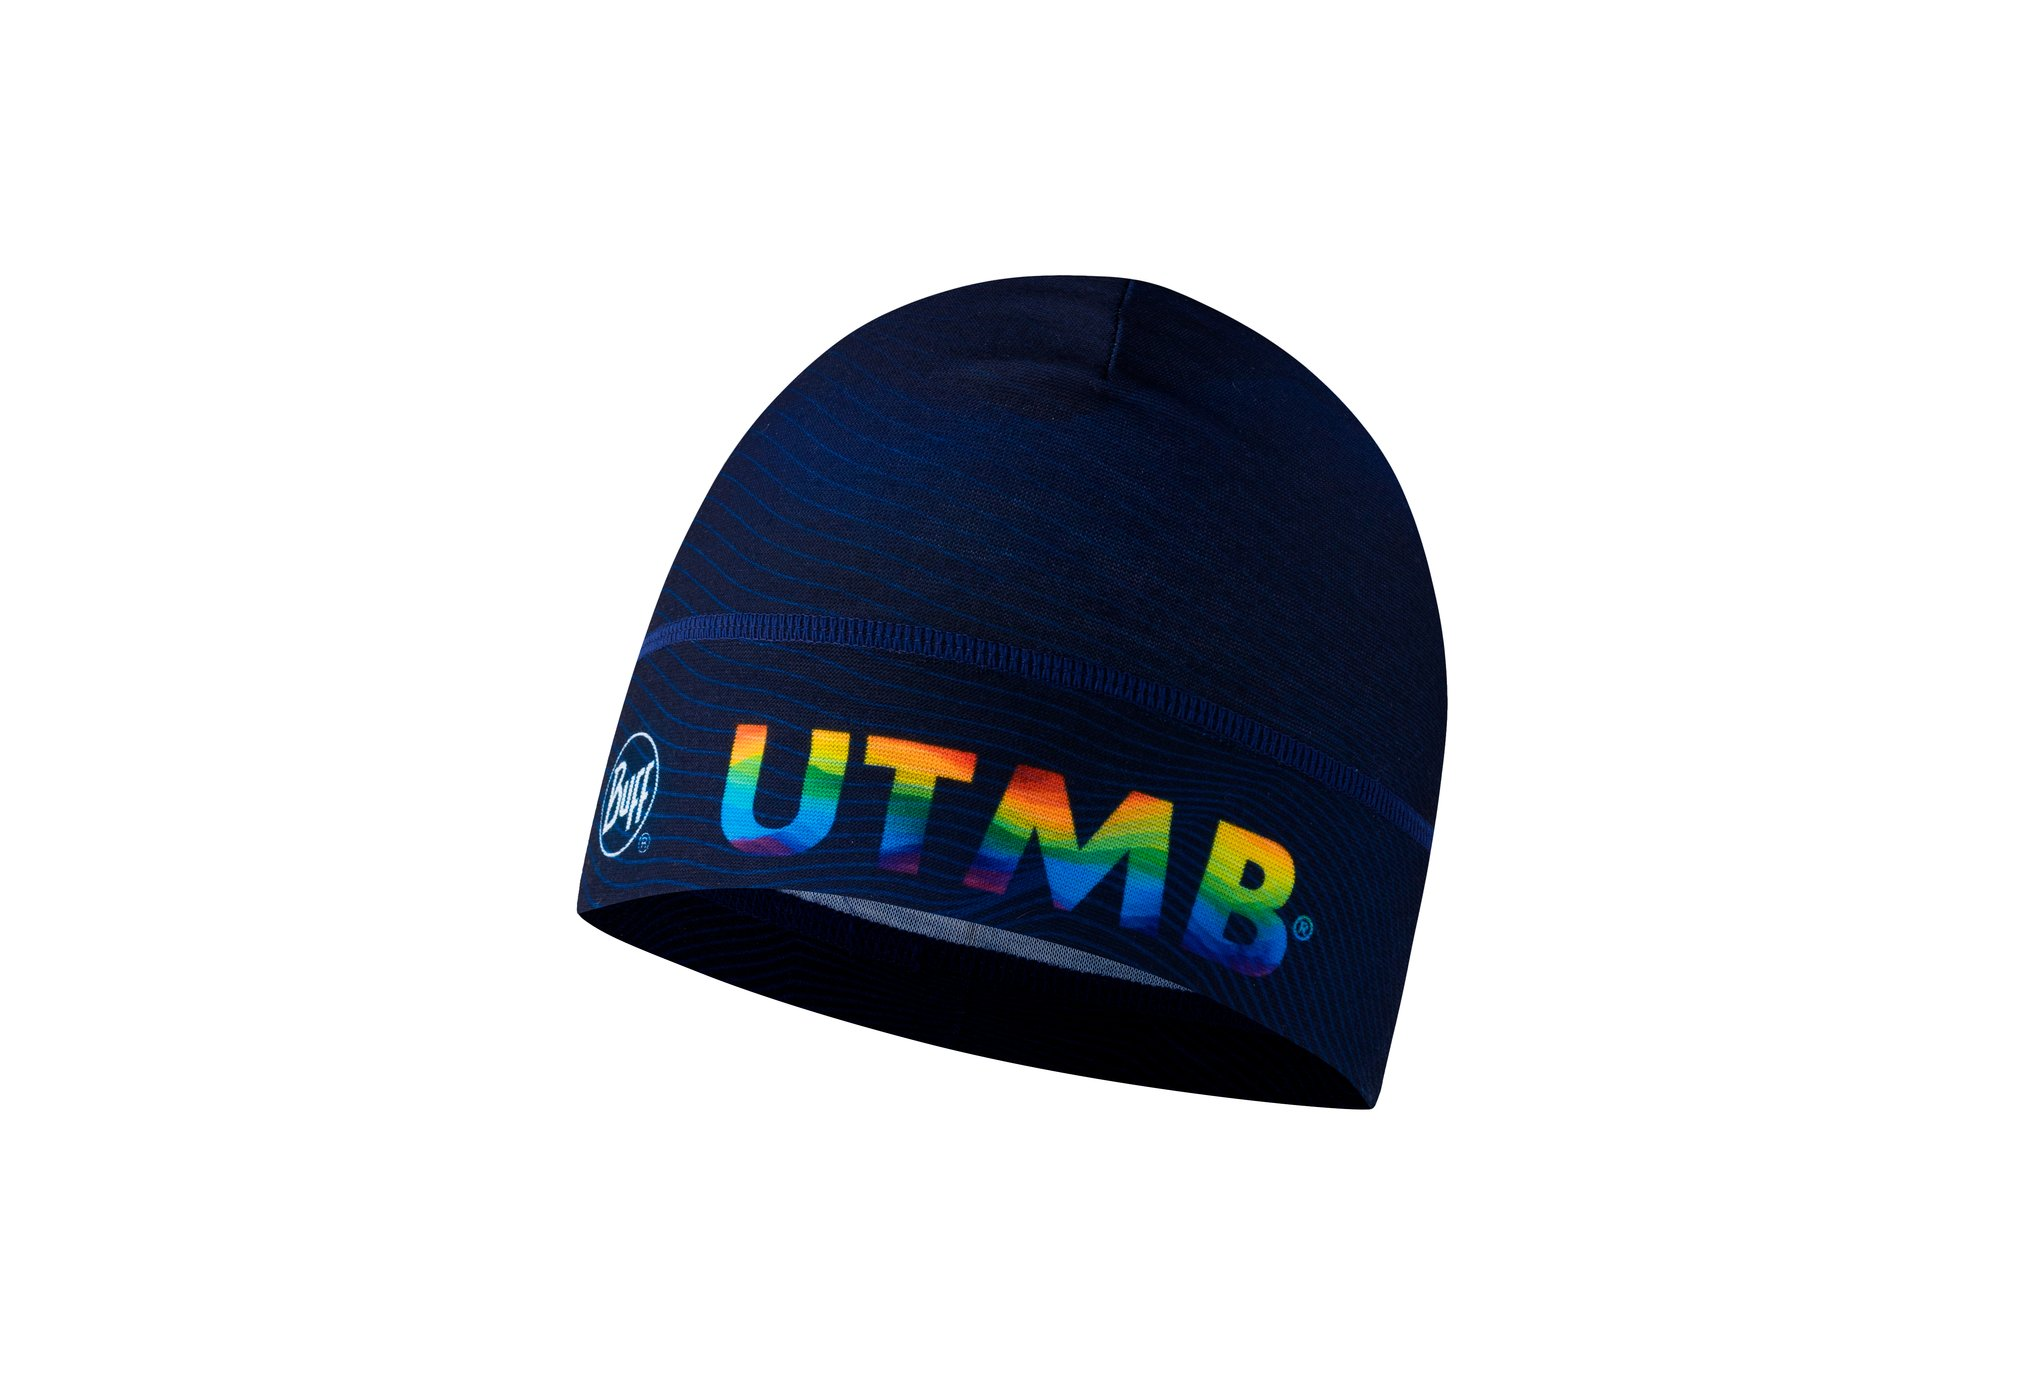 Buff Thermonet Hat UTMB® 2018 Bonnets / Gants